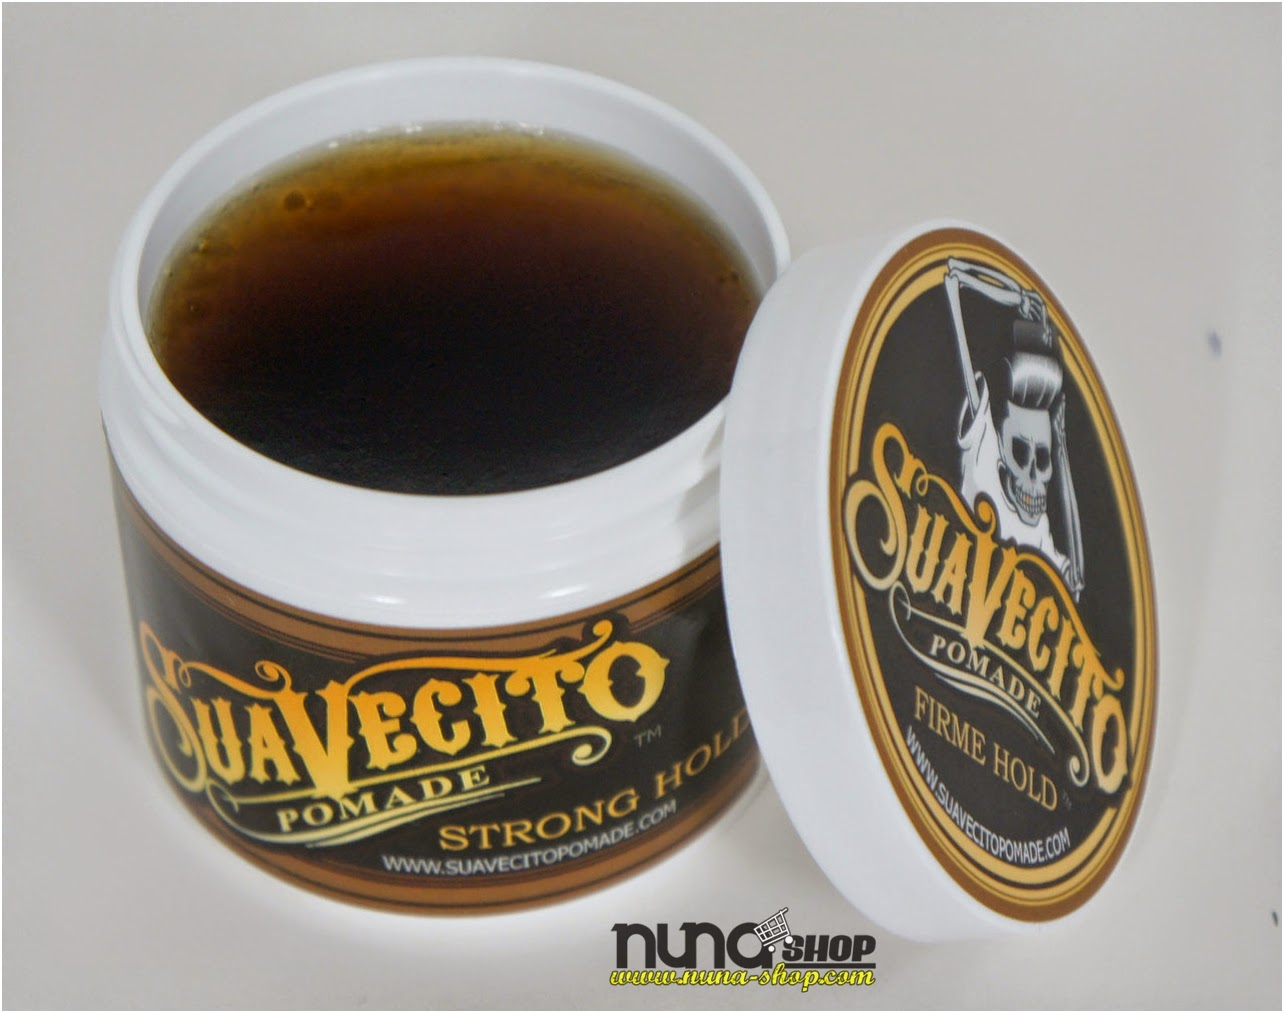 Suavecito Firme Strong Hold Pomade 4 Oz